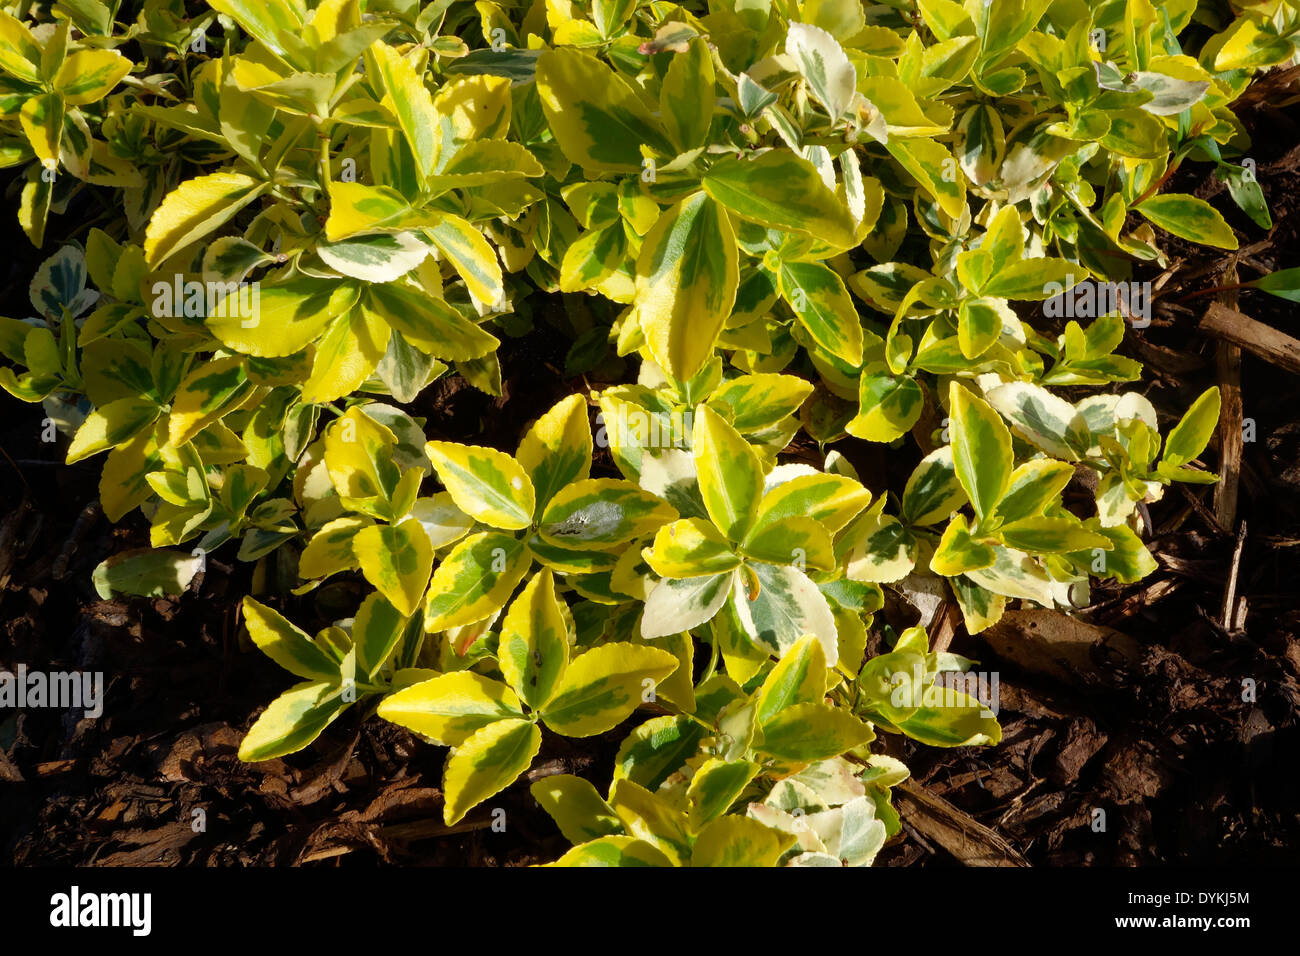 Gold Variegated Foliage Stock Photos Gold Variegated Foliage